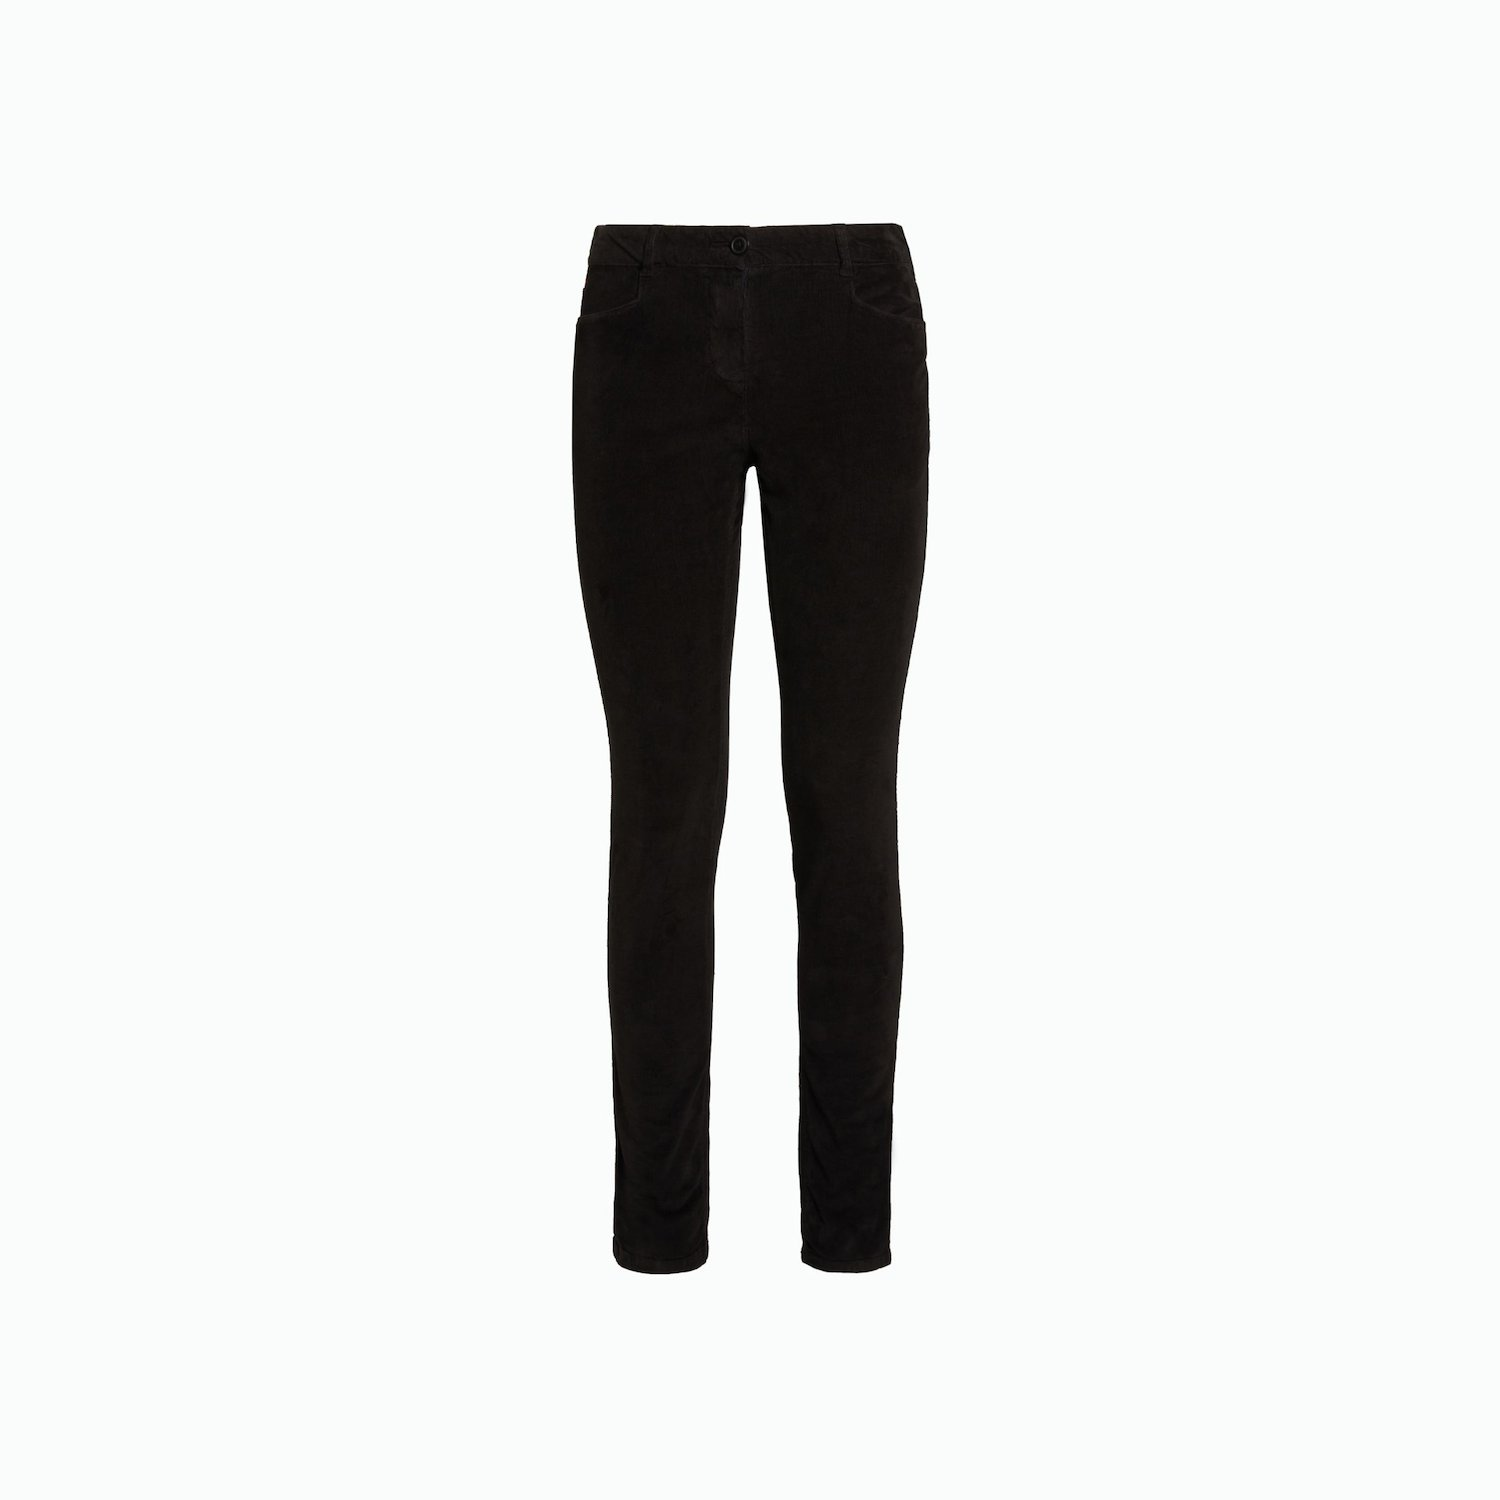 B34 Trousers - Black